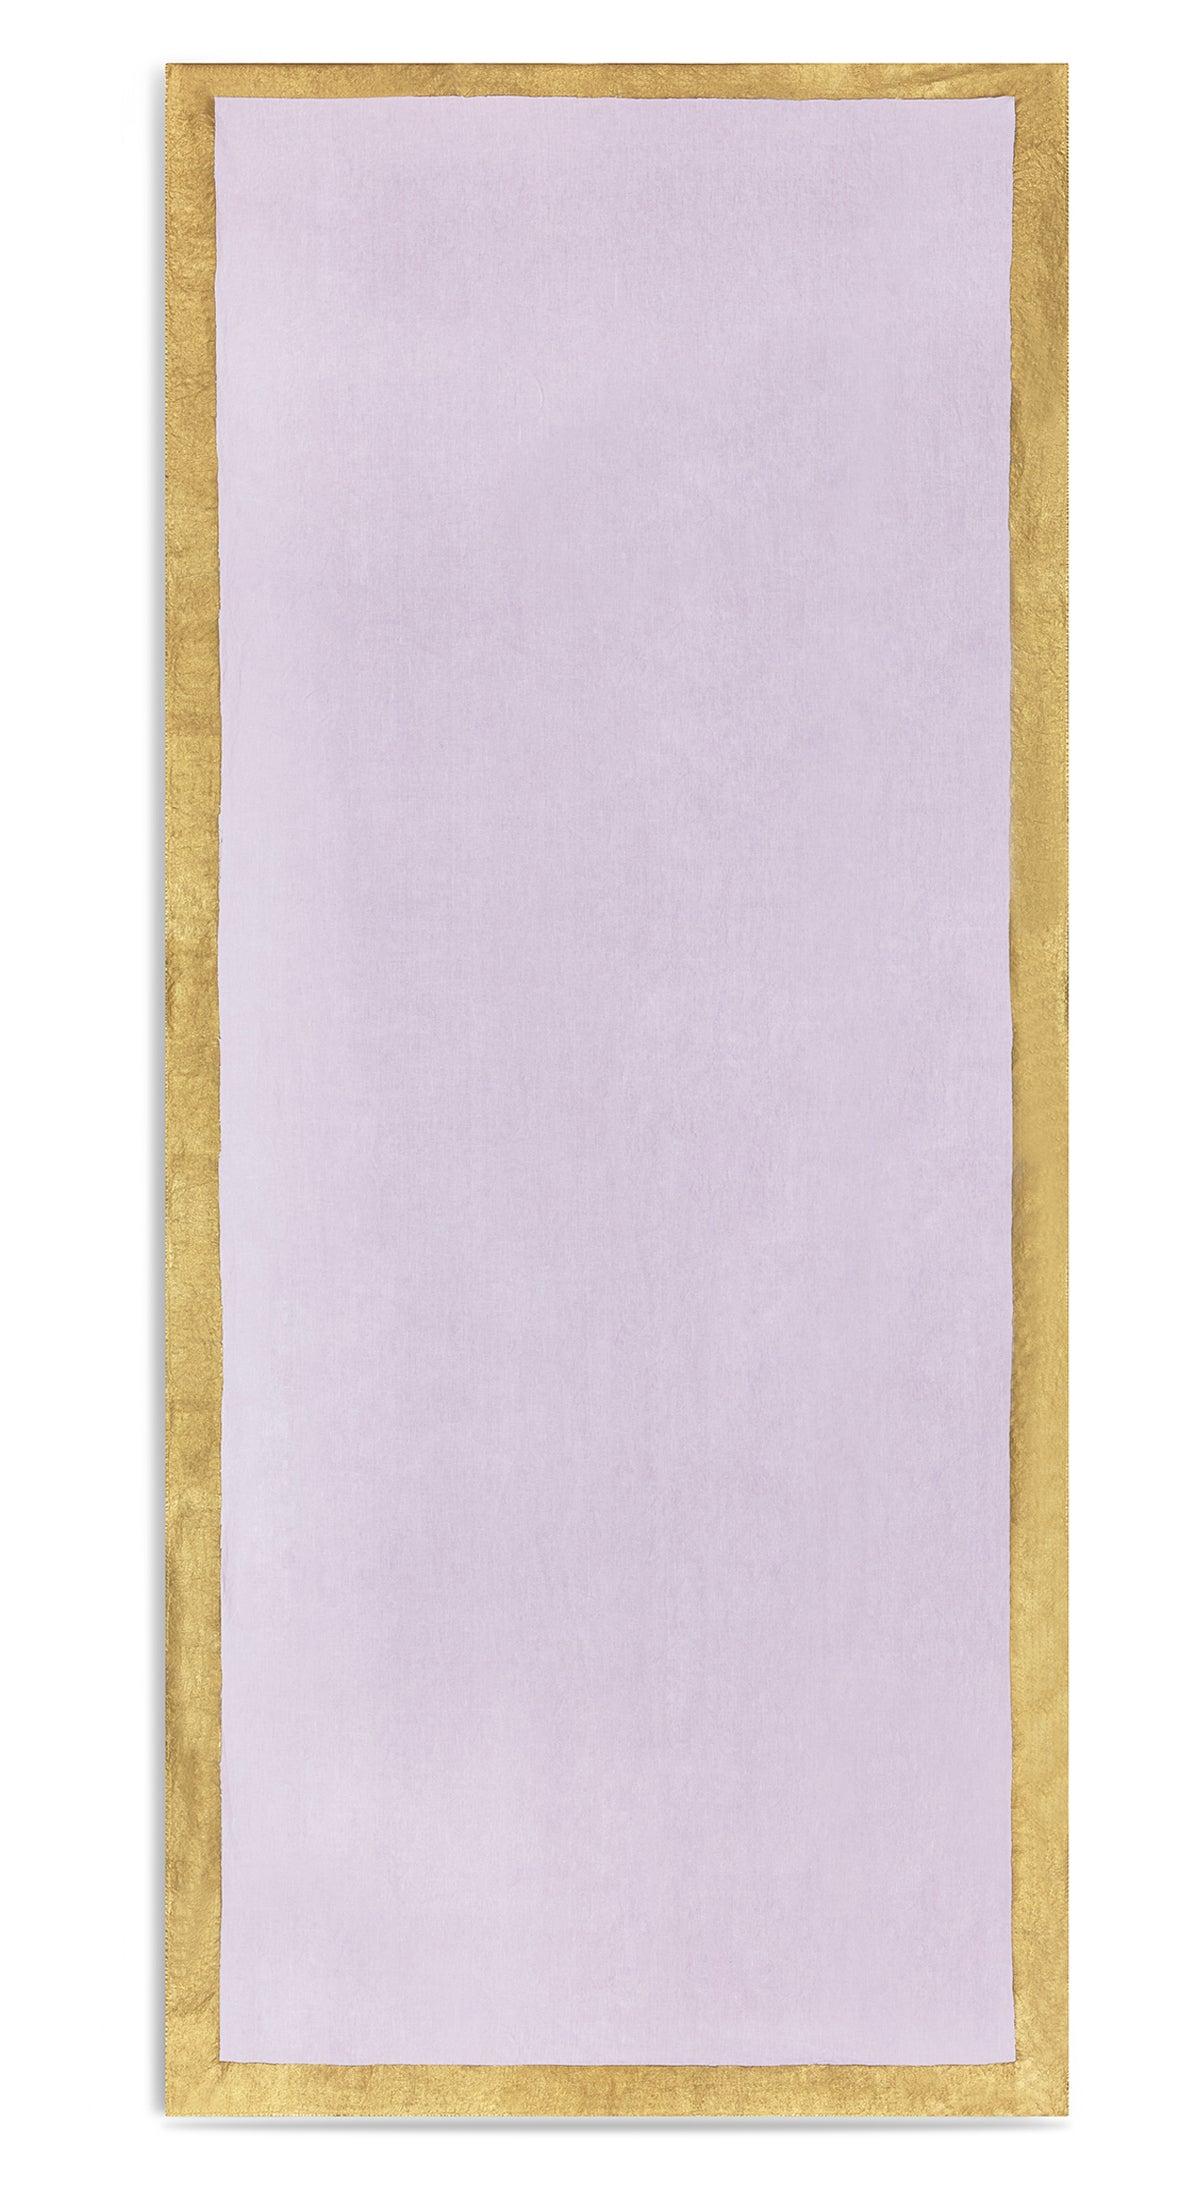 Gold Edge Linen Tablecloth in Pale Pink